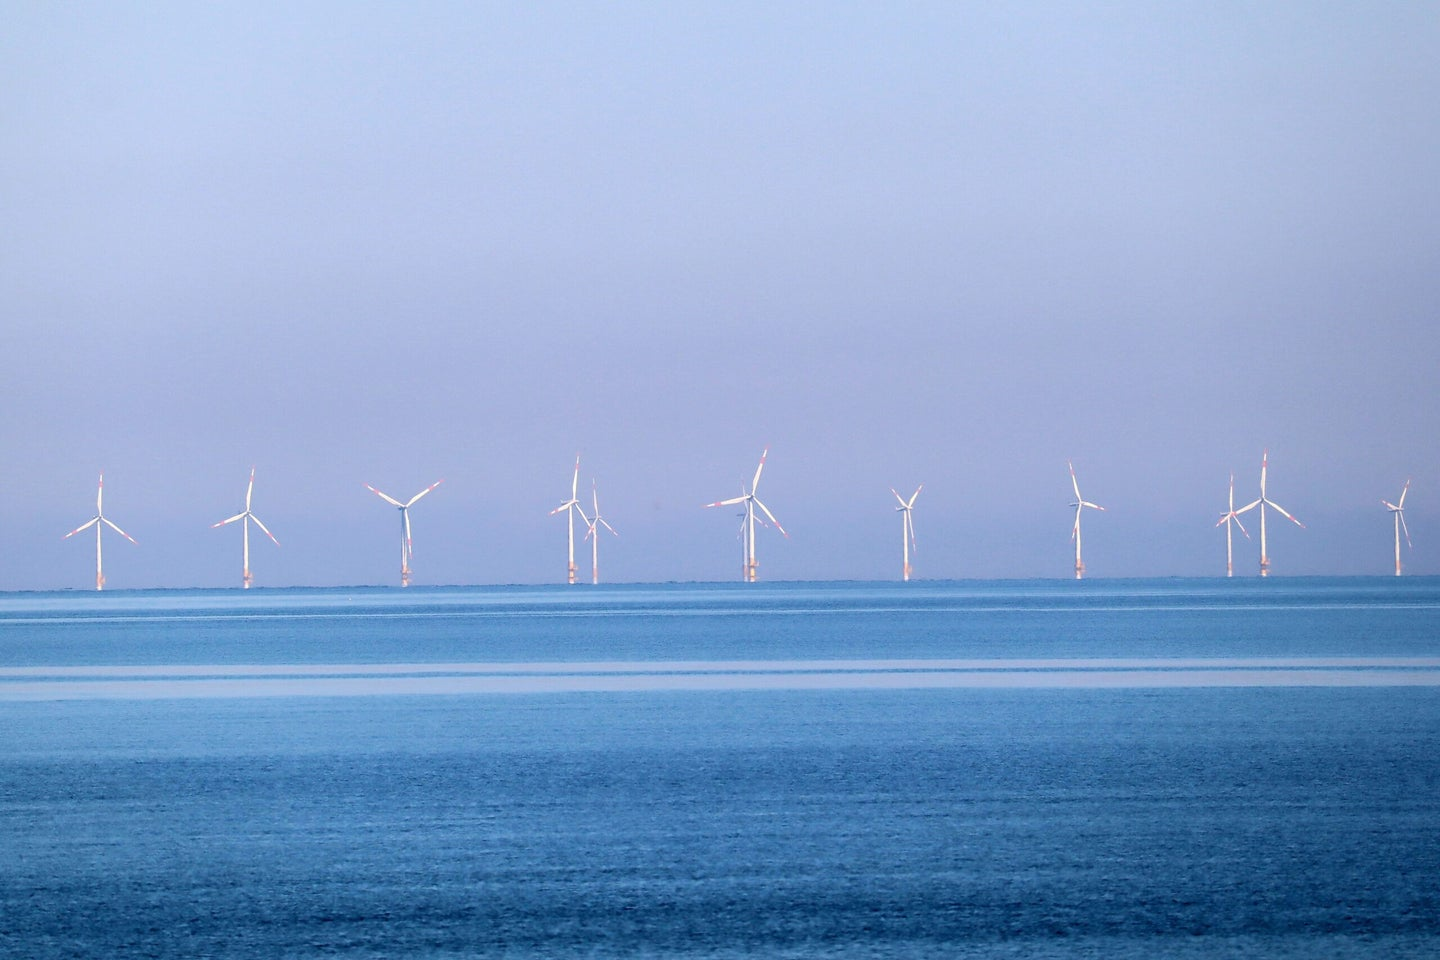 rows of offshore wind turbines